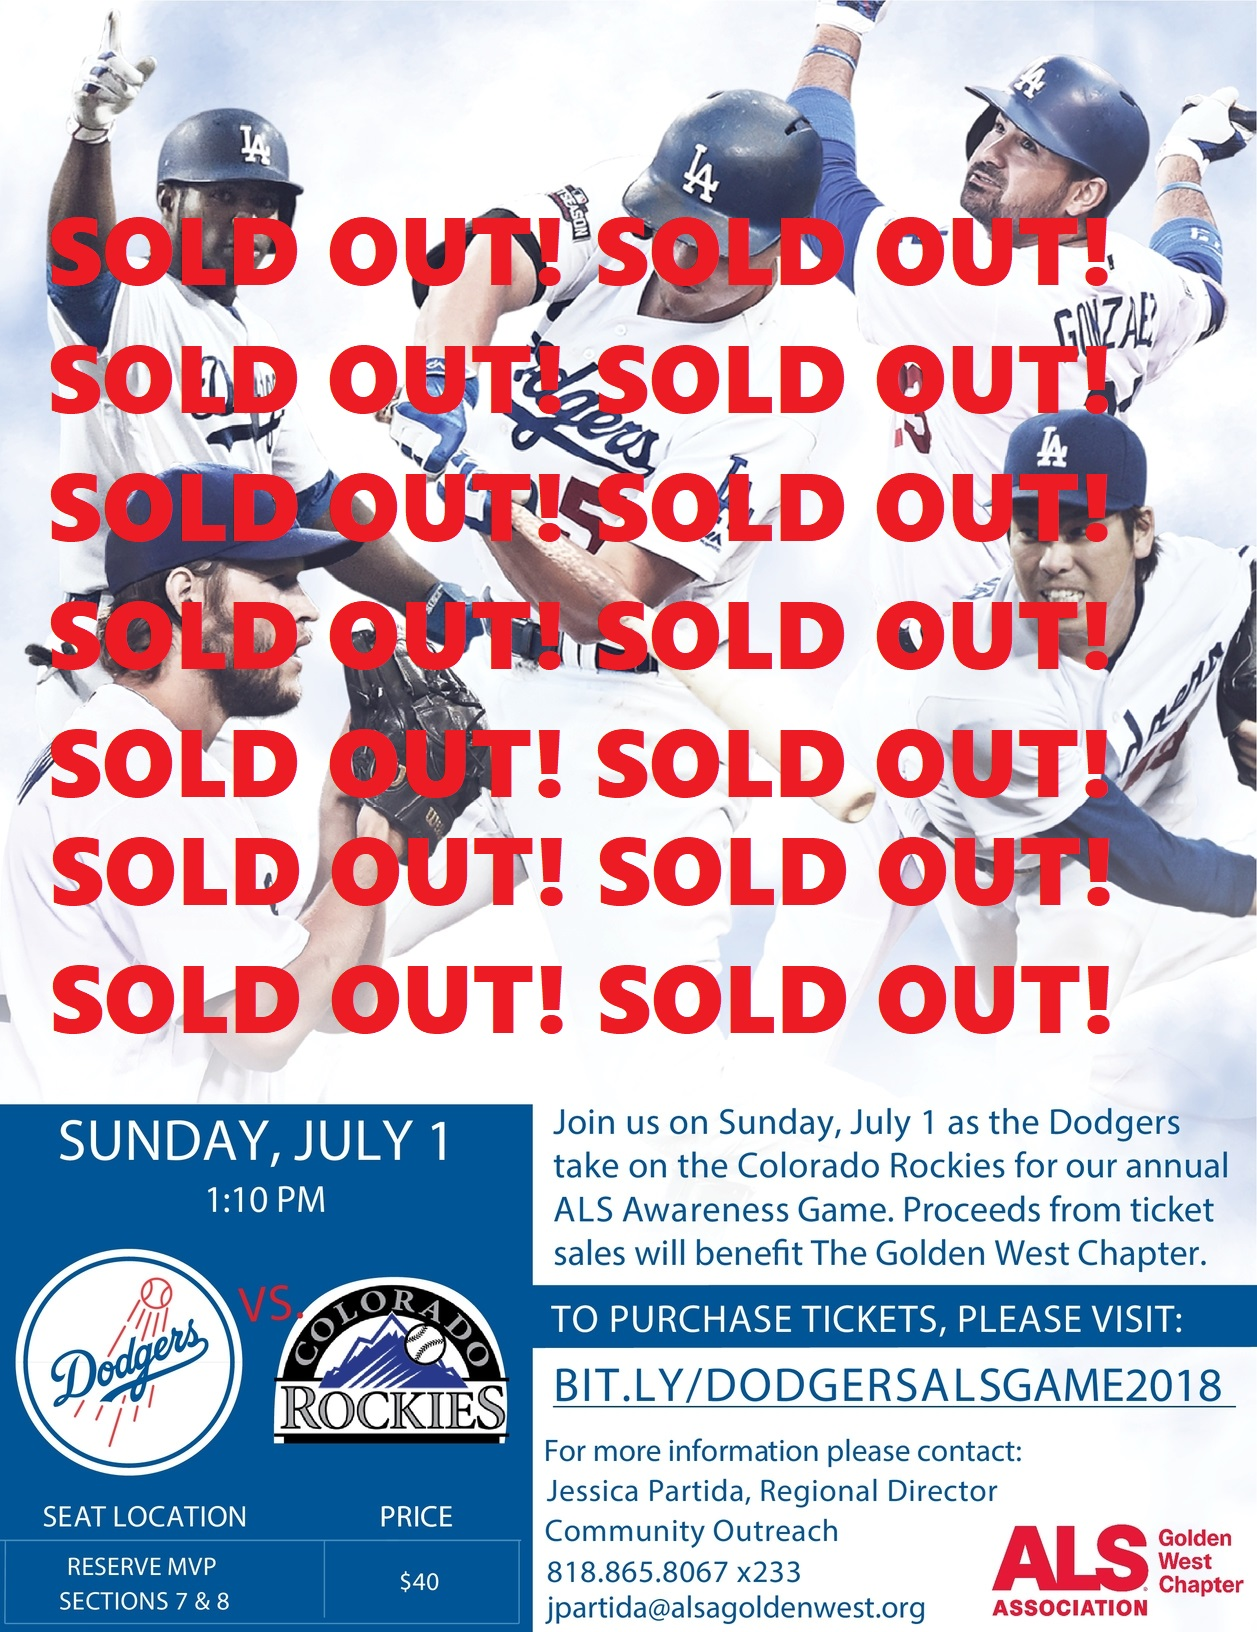 LA Dodgers ALS Awareness Game 2018 - Sold Out